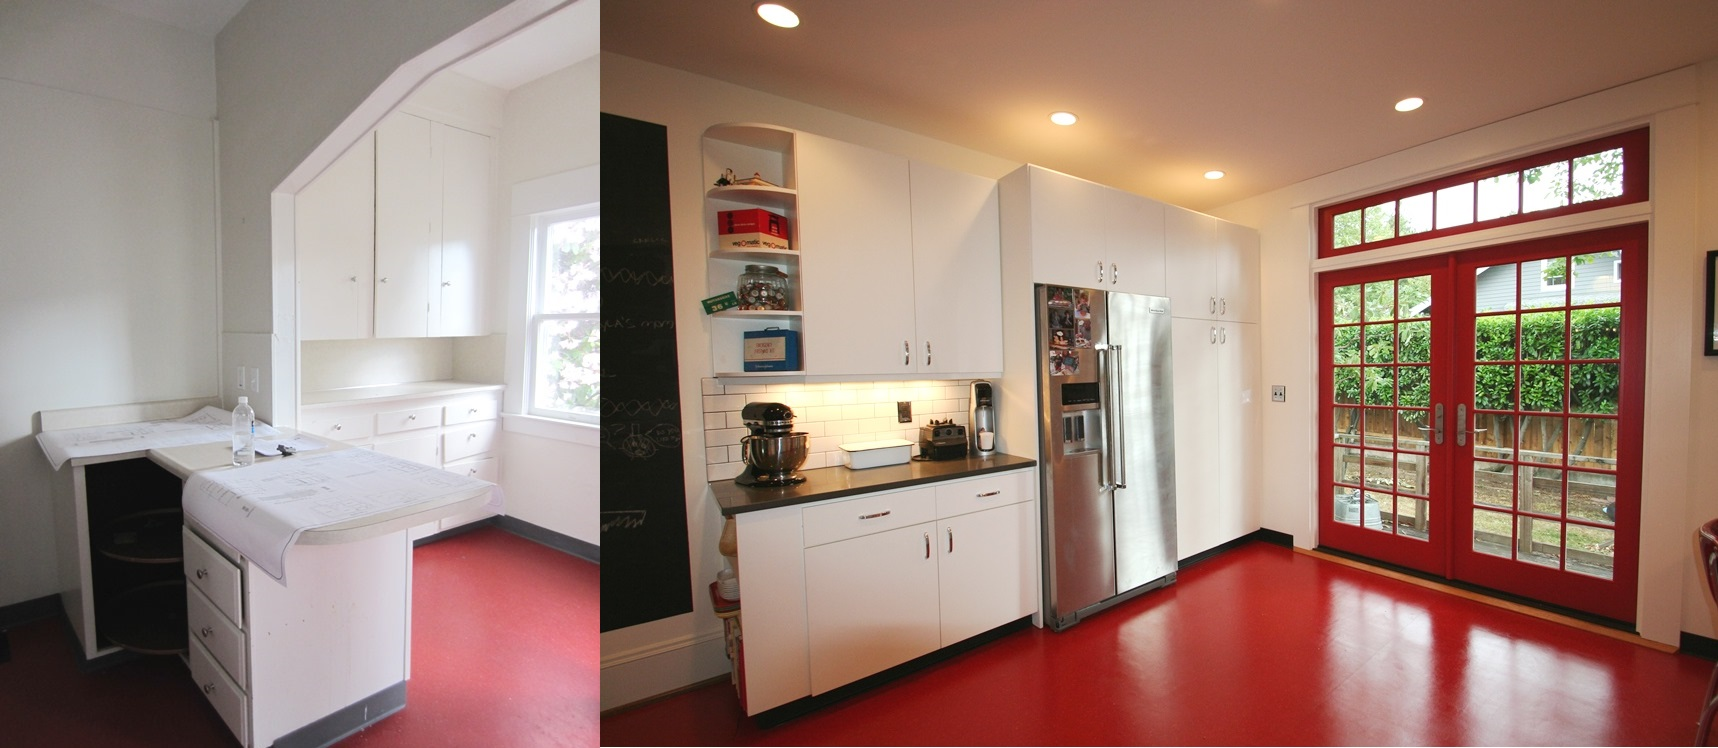 before___after_kitchen_3.jpg